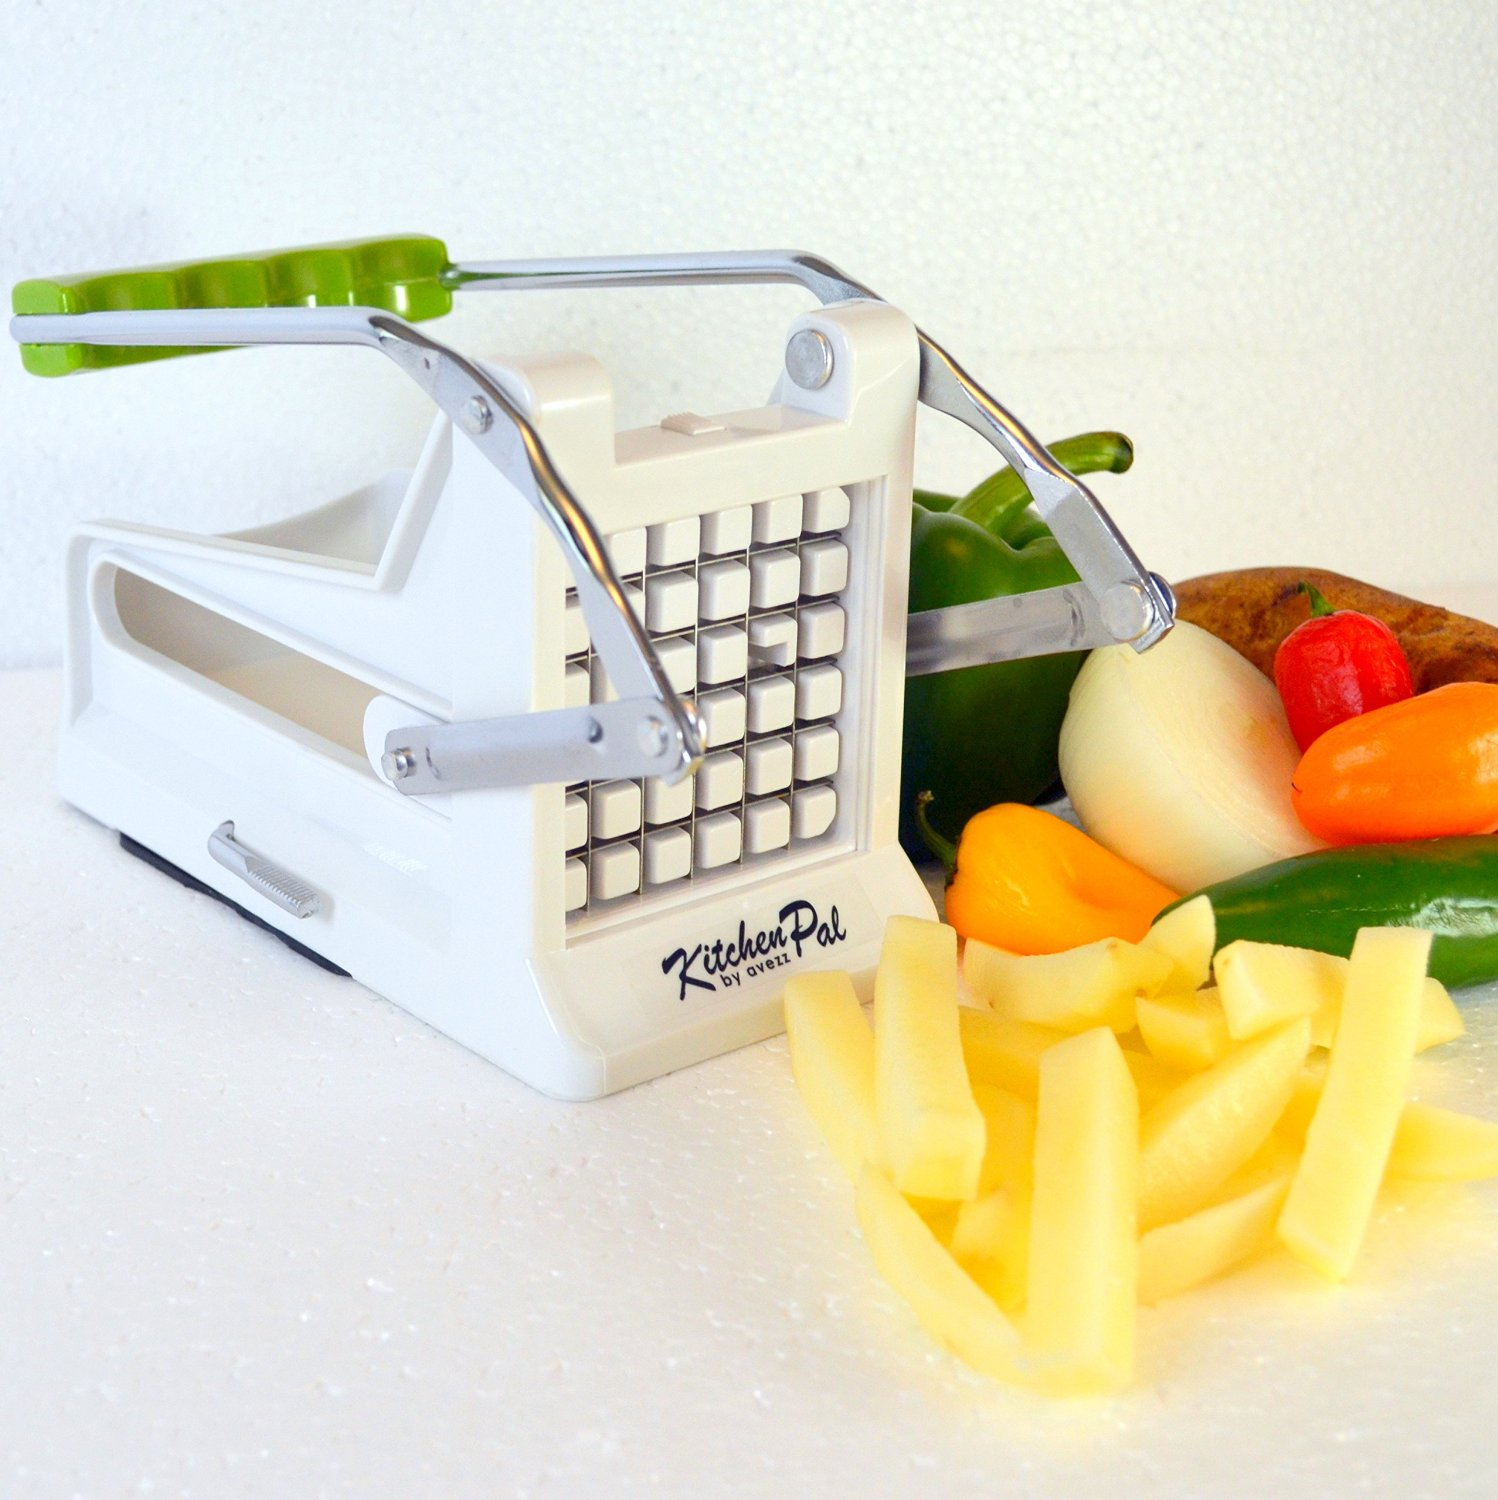 French Fry Potato Cutter Review on FixItWithFran